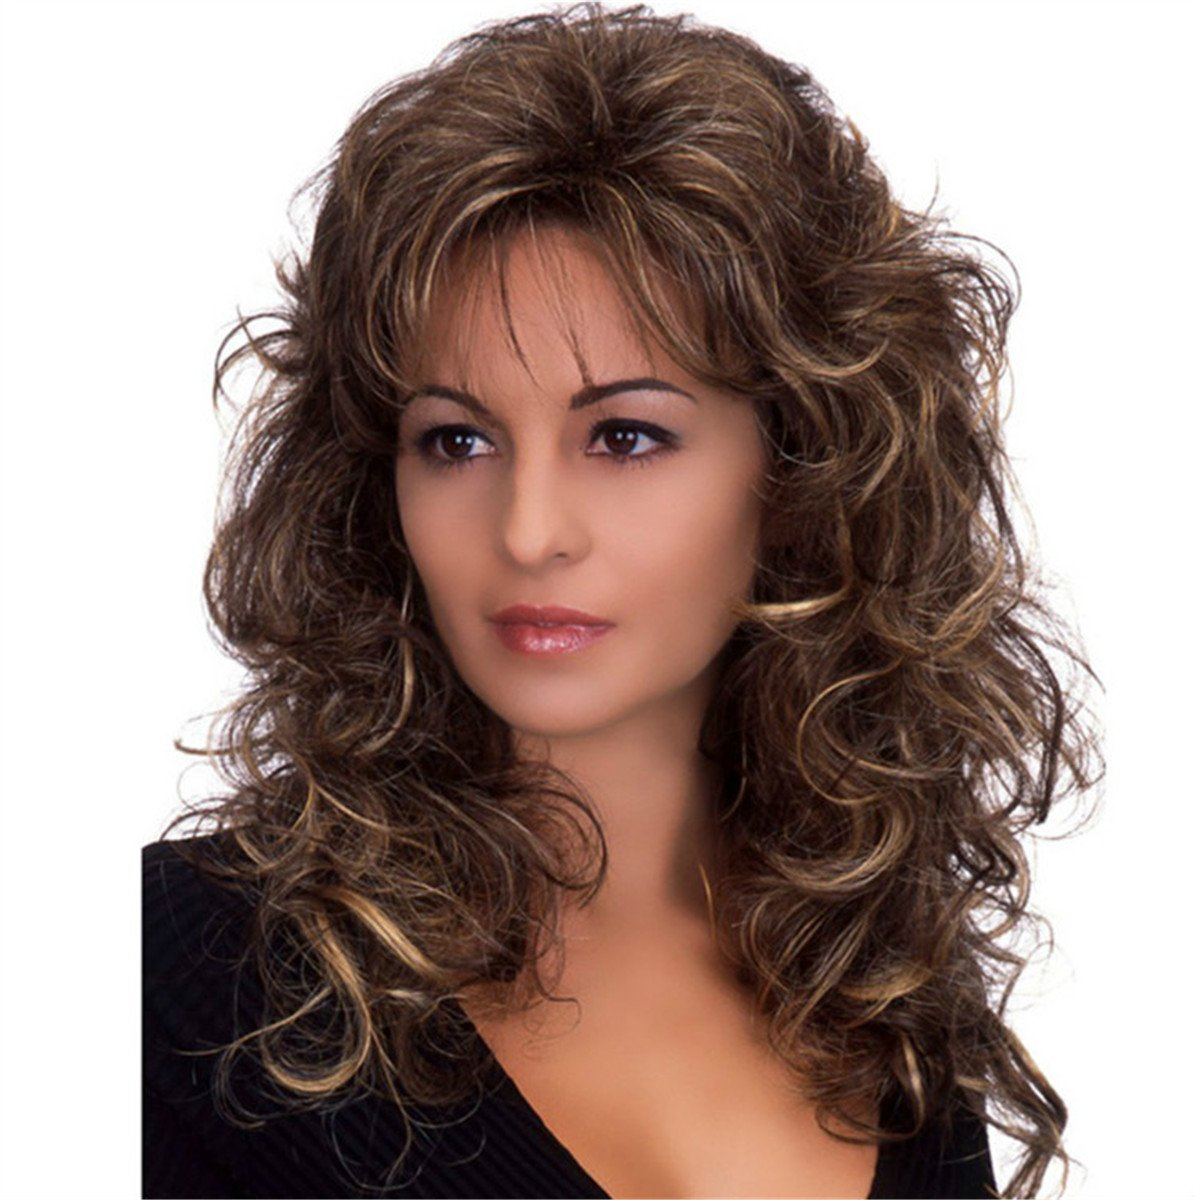 """YX 65CM 26"""" Long Fluffy Curly Natural Wigs for Women Synthetic Wig"""